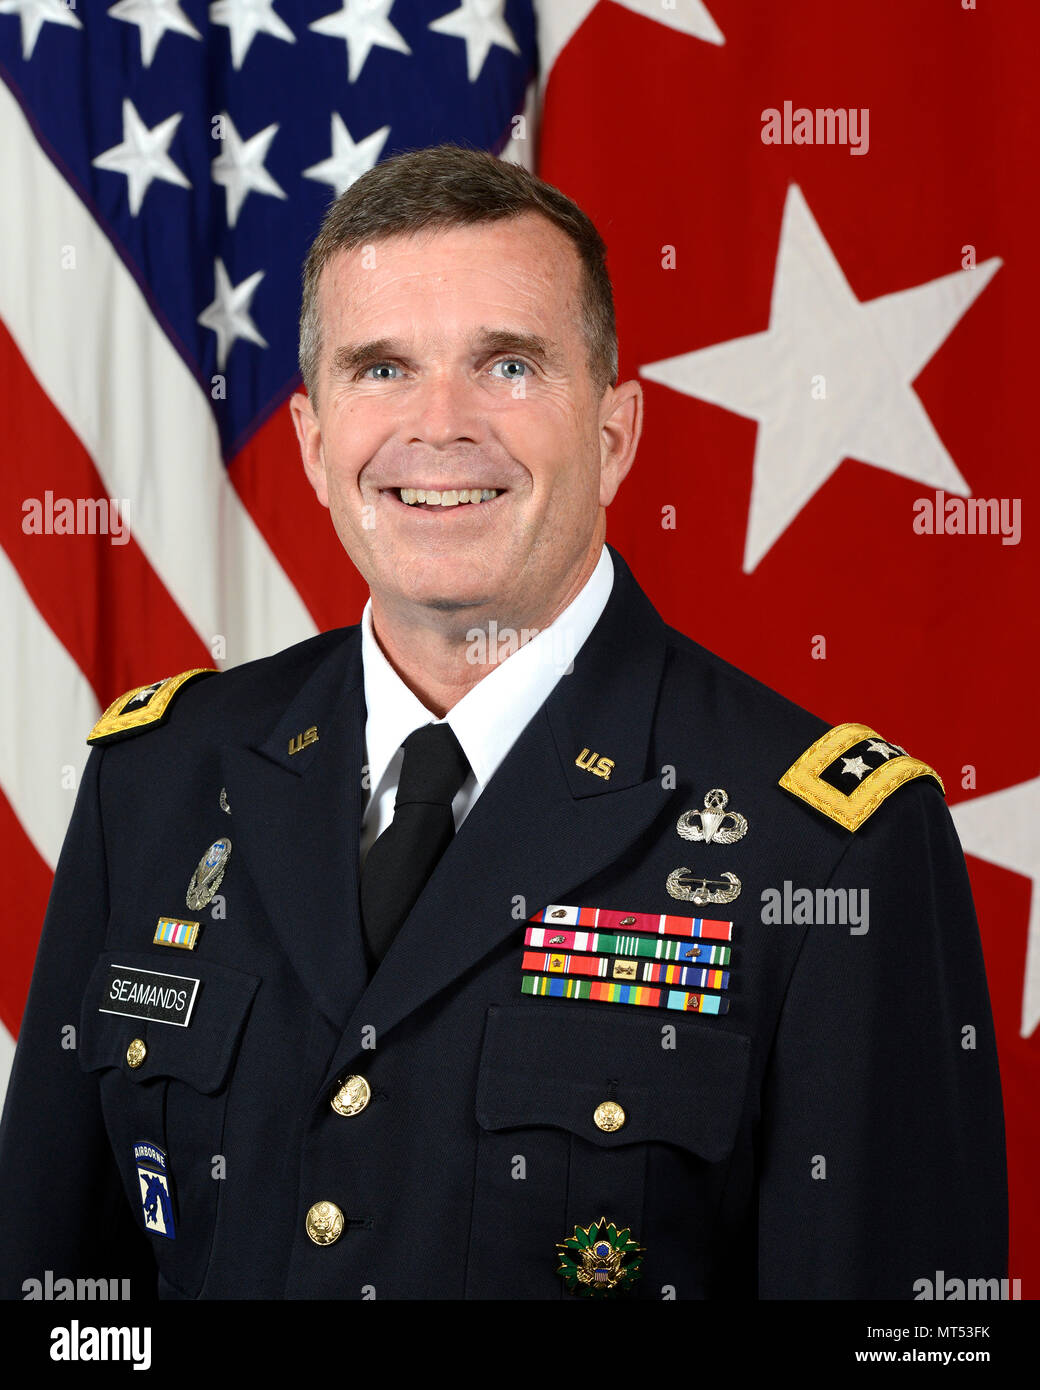 U.S. Army Lt. Gen. Thomas C. Seamands, Chief of Army Human Resources Command, (G1), poses for a command portrait in the Army portrait studio at the Pentagon in Arlington, VA, July 7, 2017.  (U.S. Army photo by Monica King/Released) - Stock Image